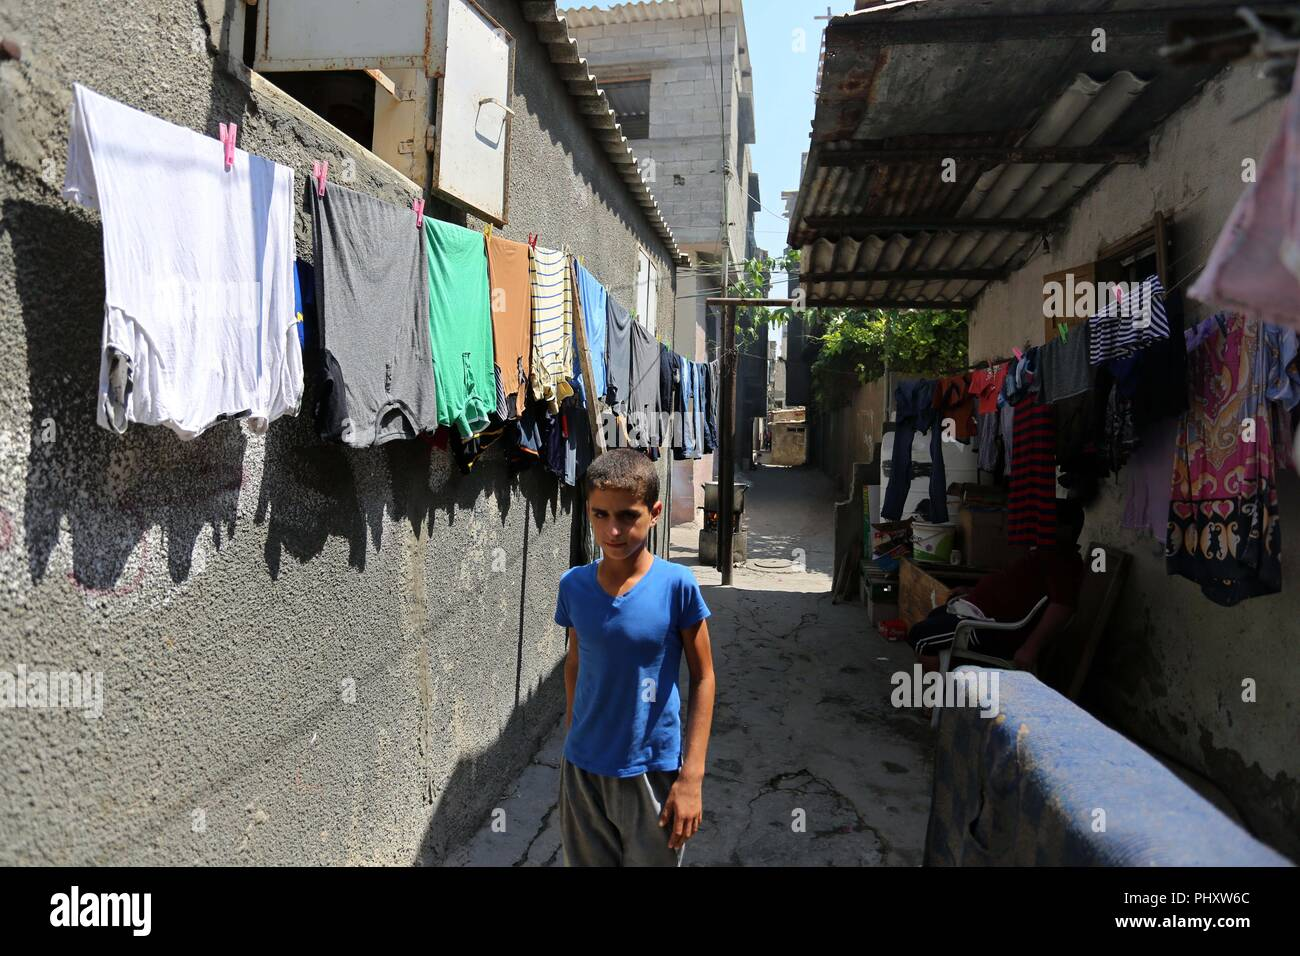 Gaza City, Gaza Strip, Palestinian Territory. 3rd Sep, 2018. A Palestinian refugee boy walks in a street at Al-Shati refugee camp, in Gaza City on September 3, 2018. The United States halted all funding to United Nations' agency that helps Palestinian refugees. State Department spokeswoman Heather Nauert said the business model and fiscal practices of the United Nations Relief and Works Agency (UNRWA) made it an 'irredeemably flawed operation Credit: Ashraf Amra/APA Images/ZUMA Wire/Alamy Live News - Stock Image